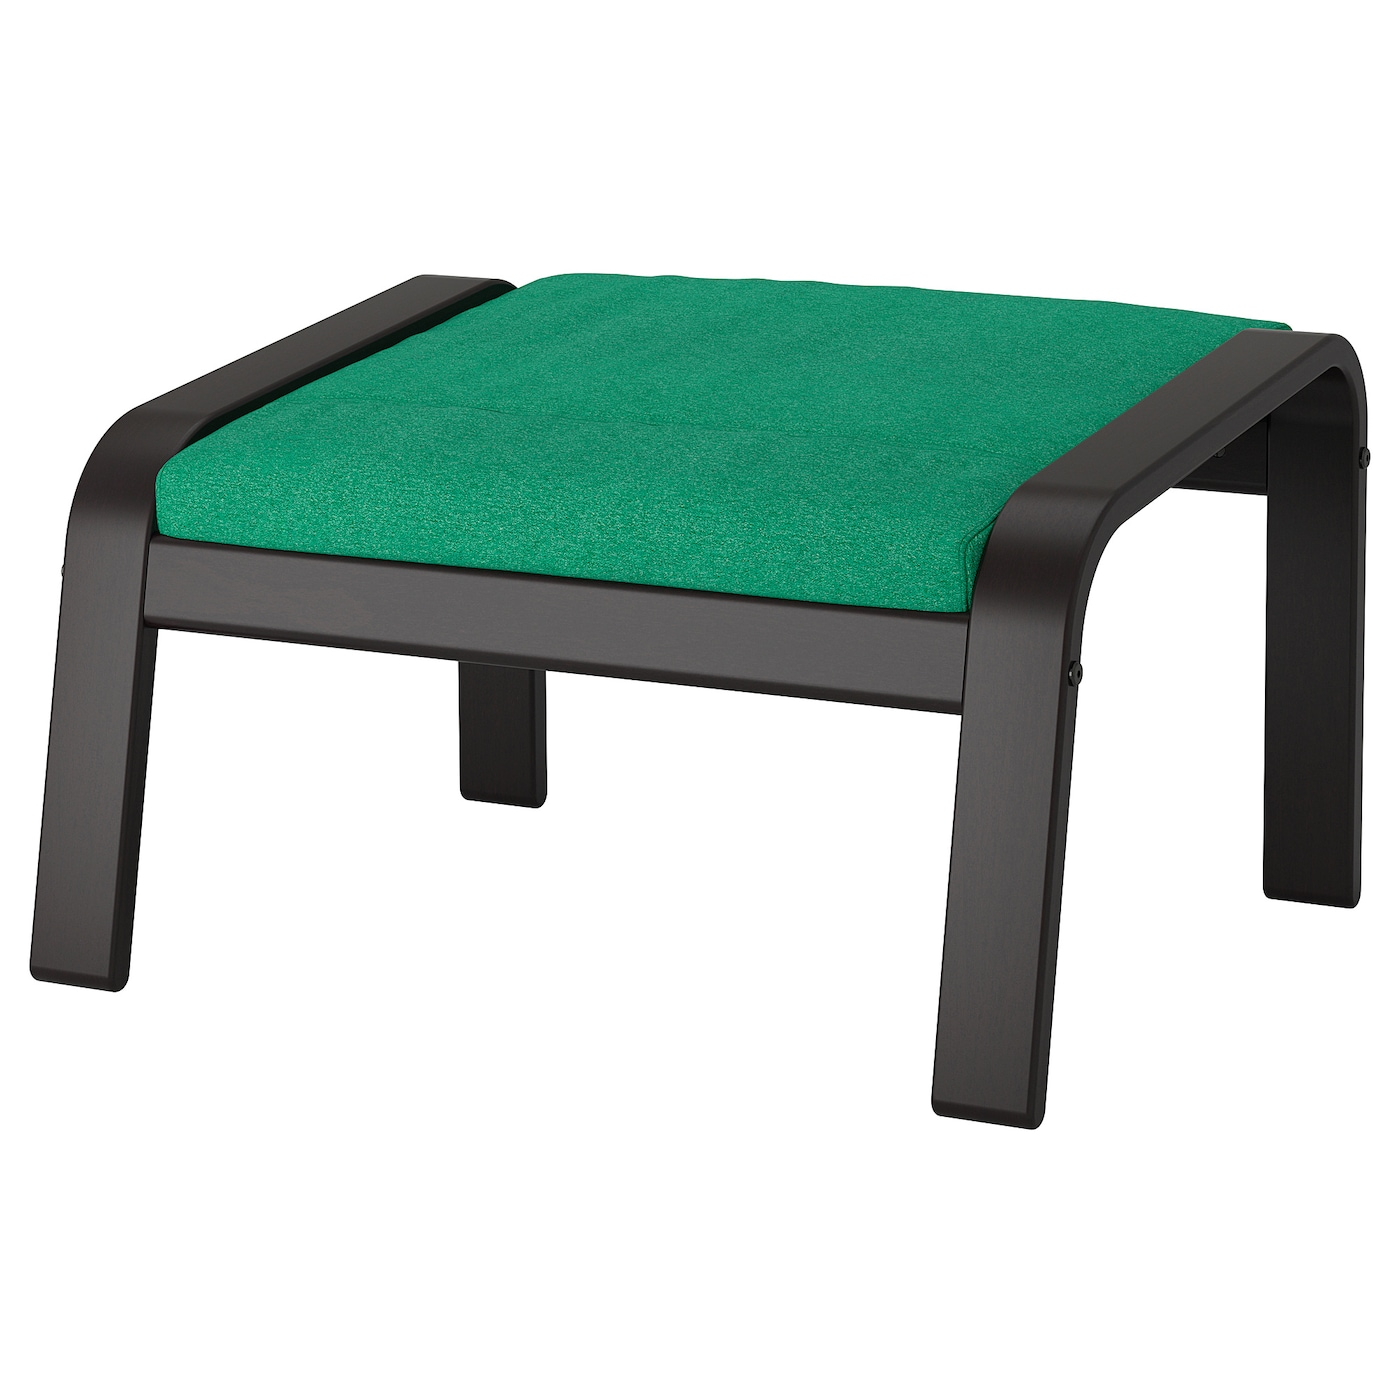 Ikea Poang Footstool Cushion Lysed Bright Green New Footstool Not Included